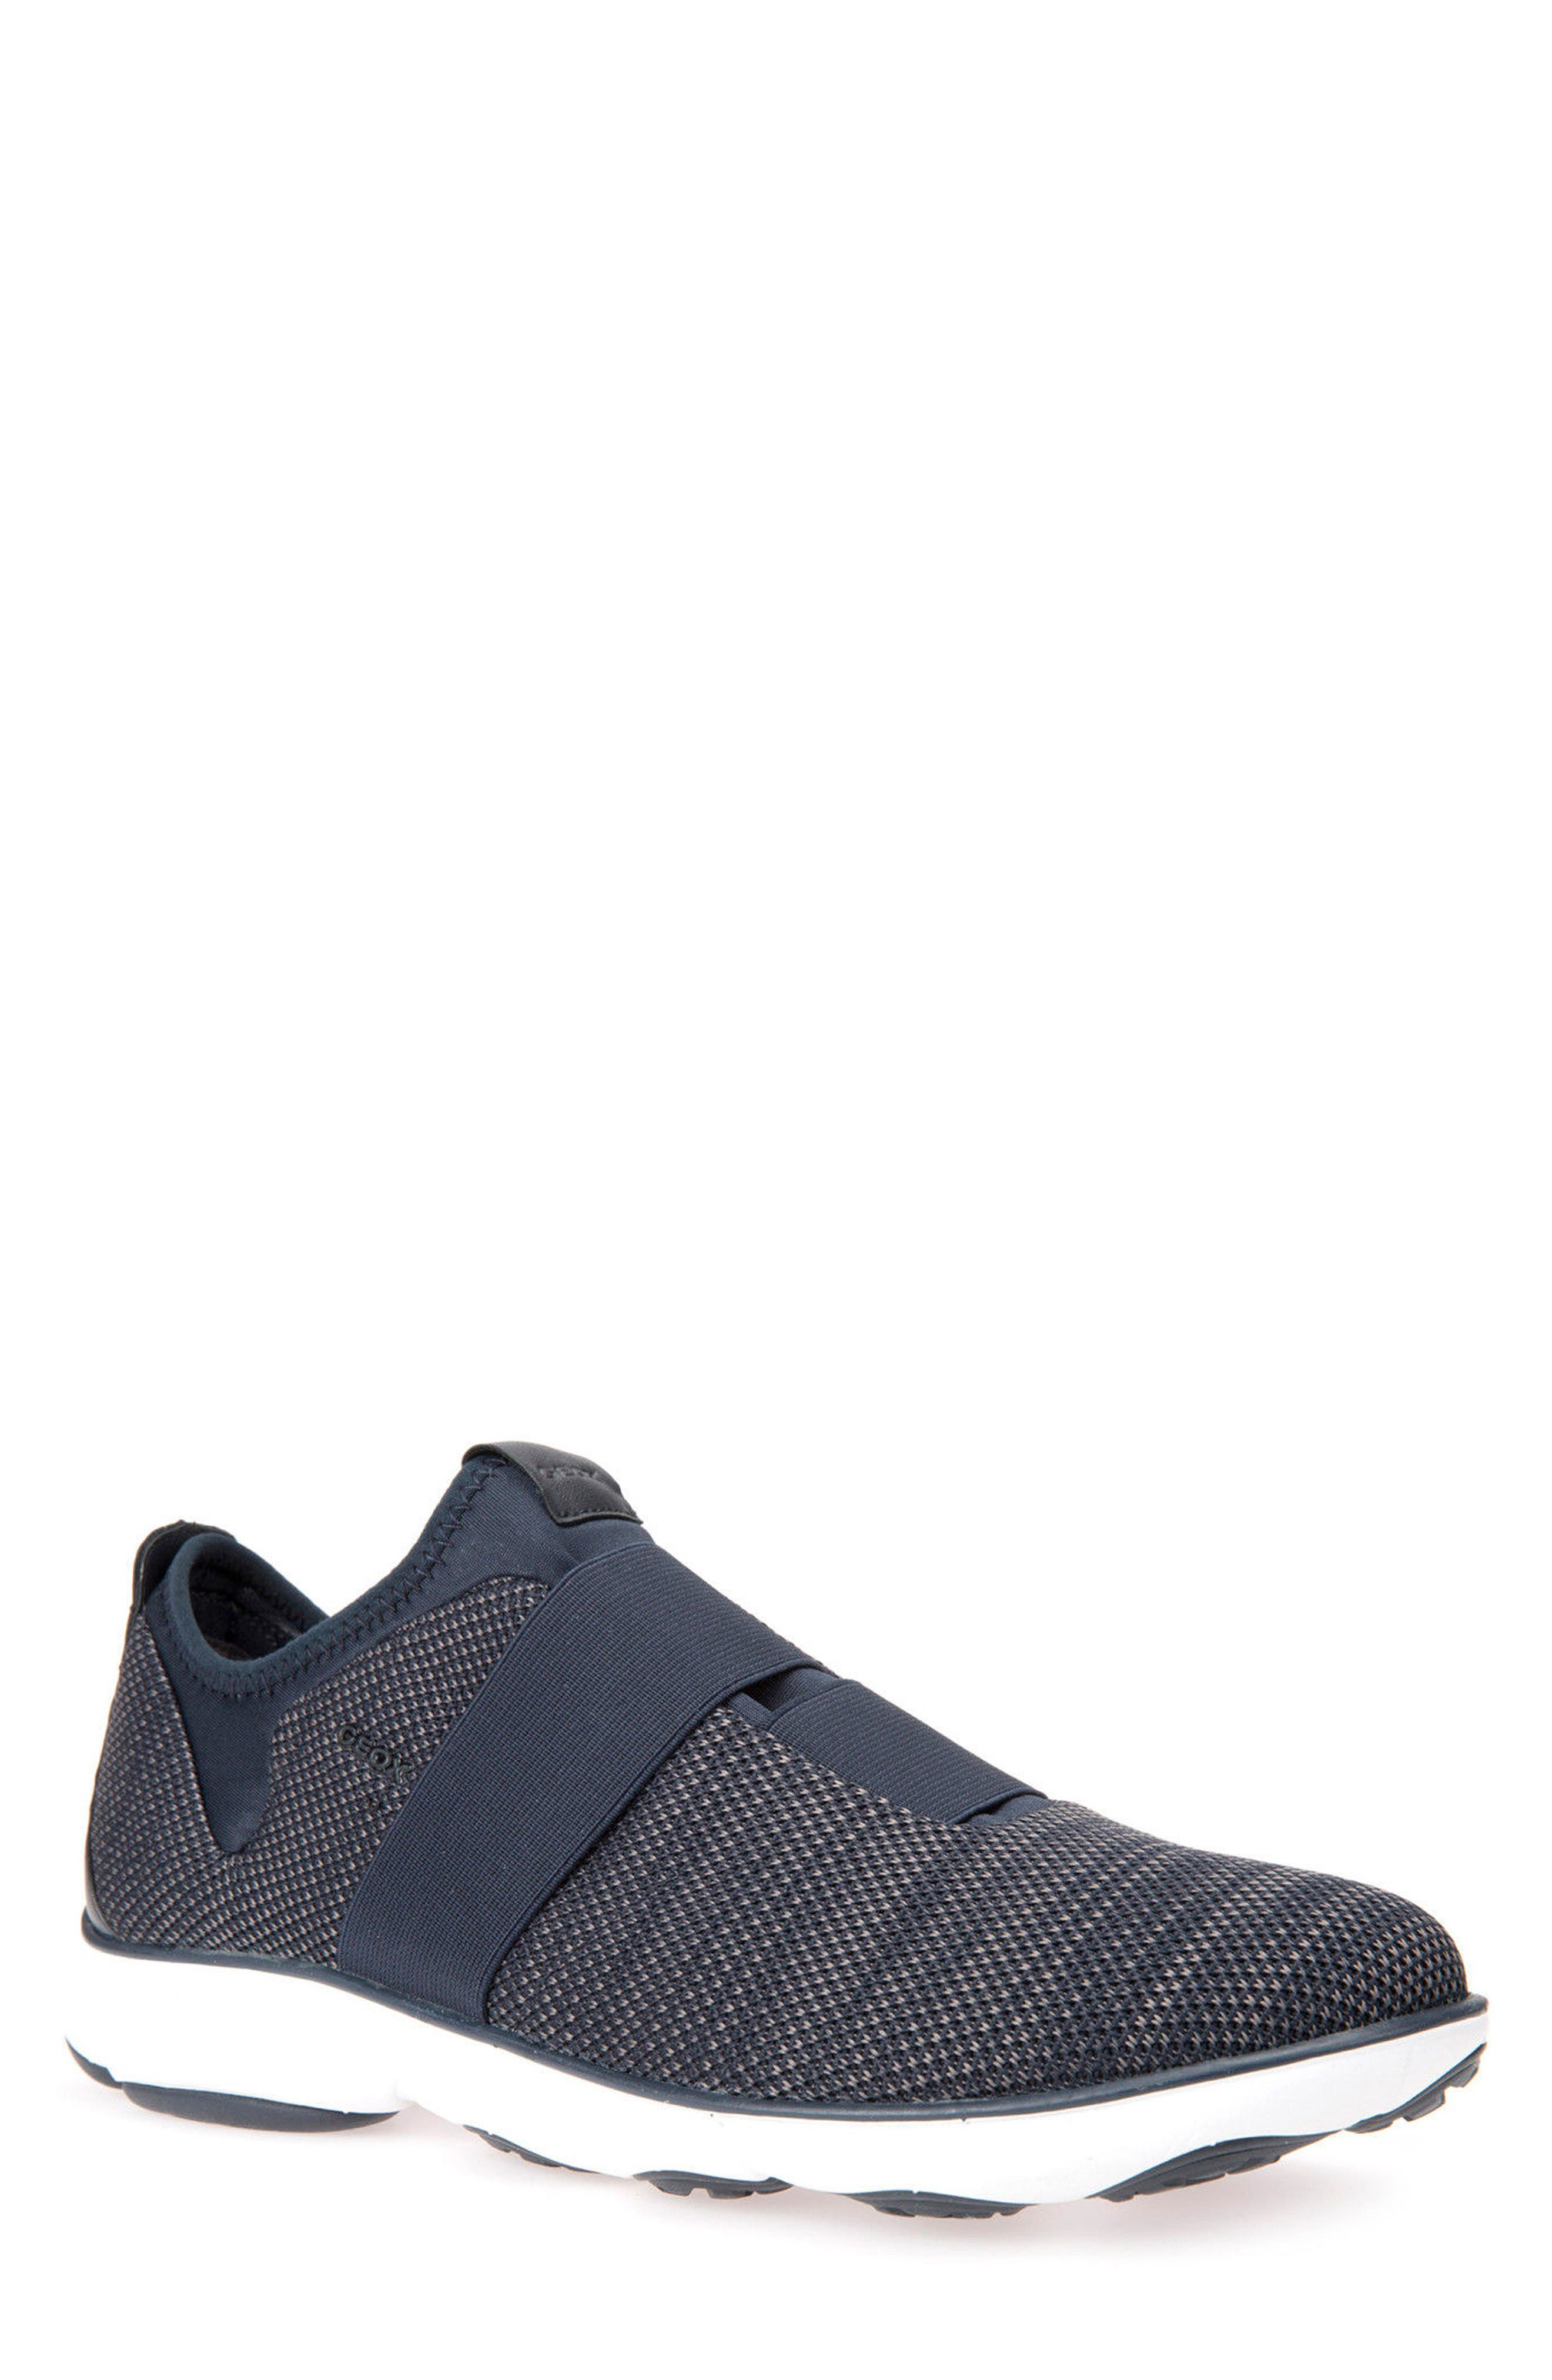 Nebula 45 Banded Slip-On Sneaker,                         Main,                         color, Navy